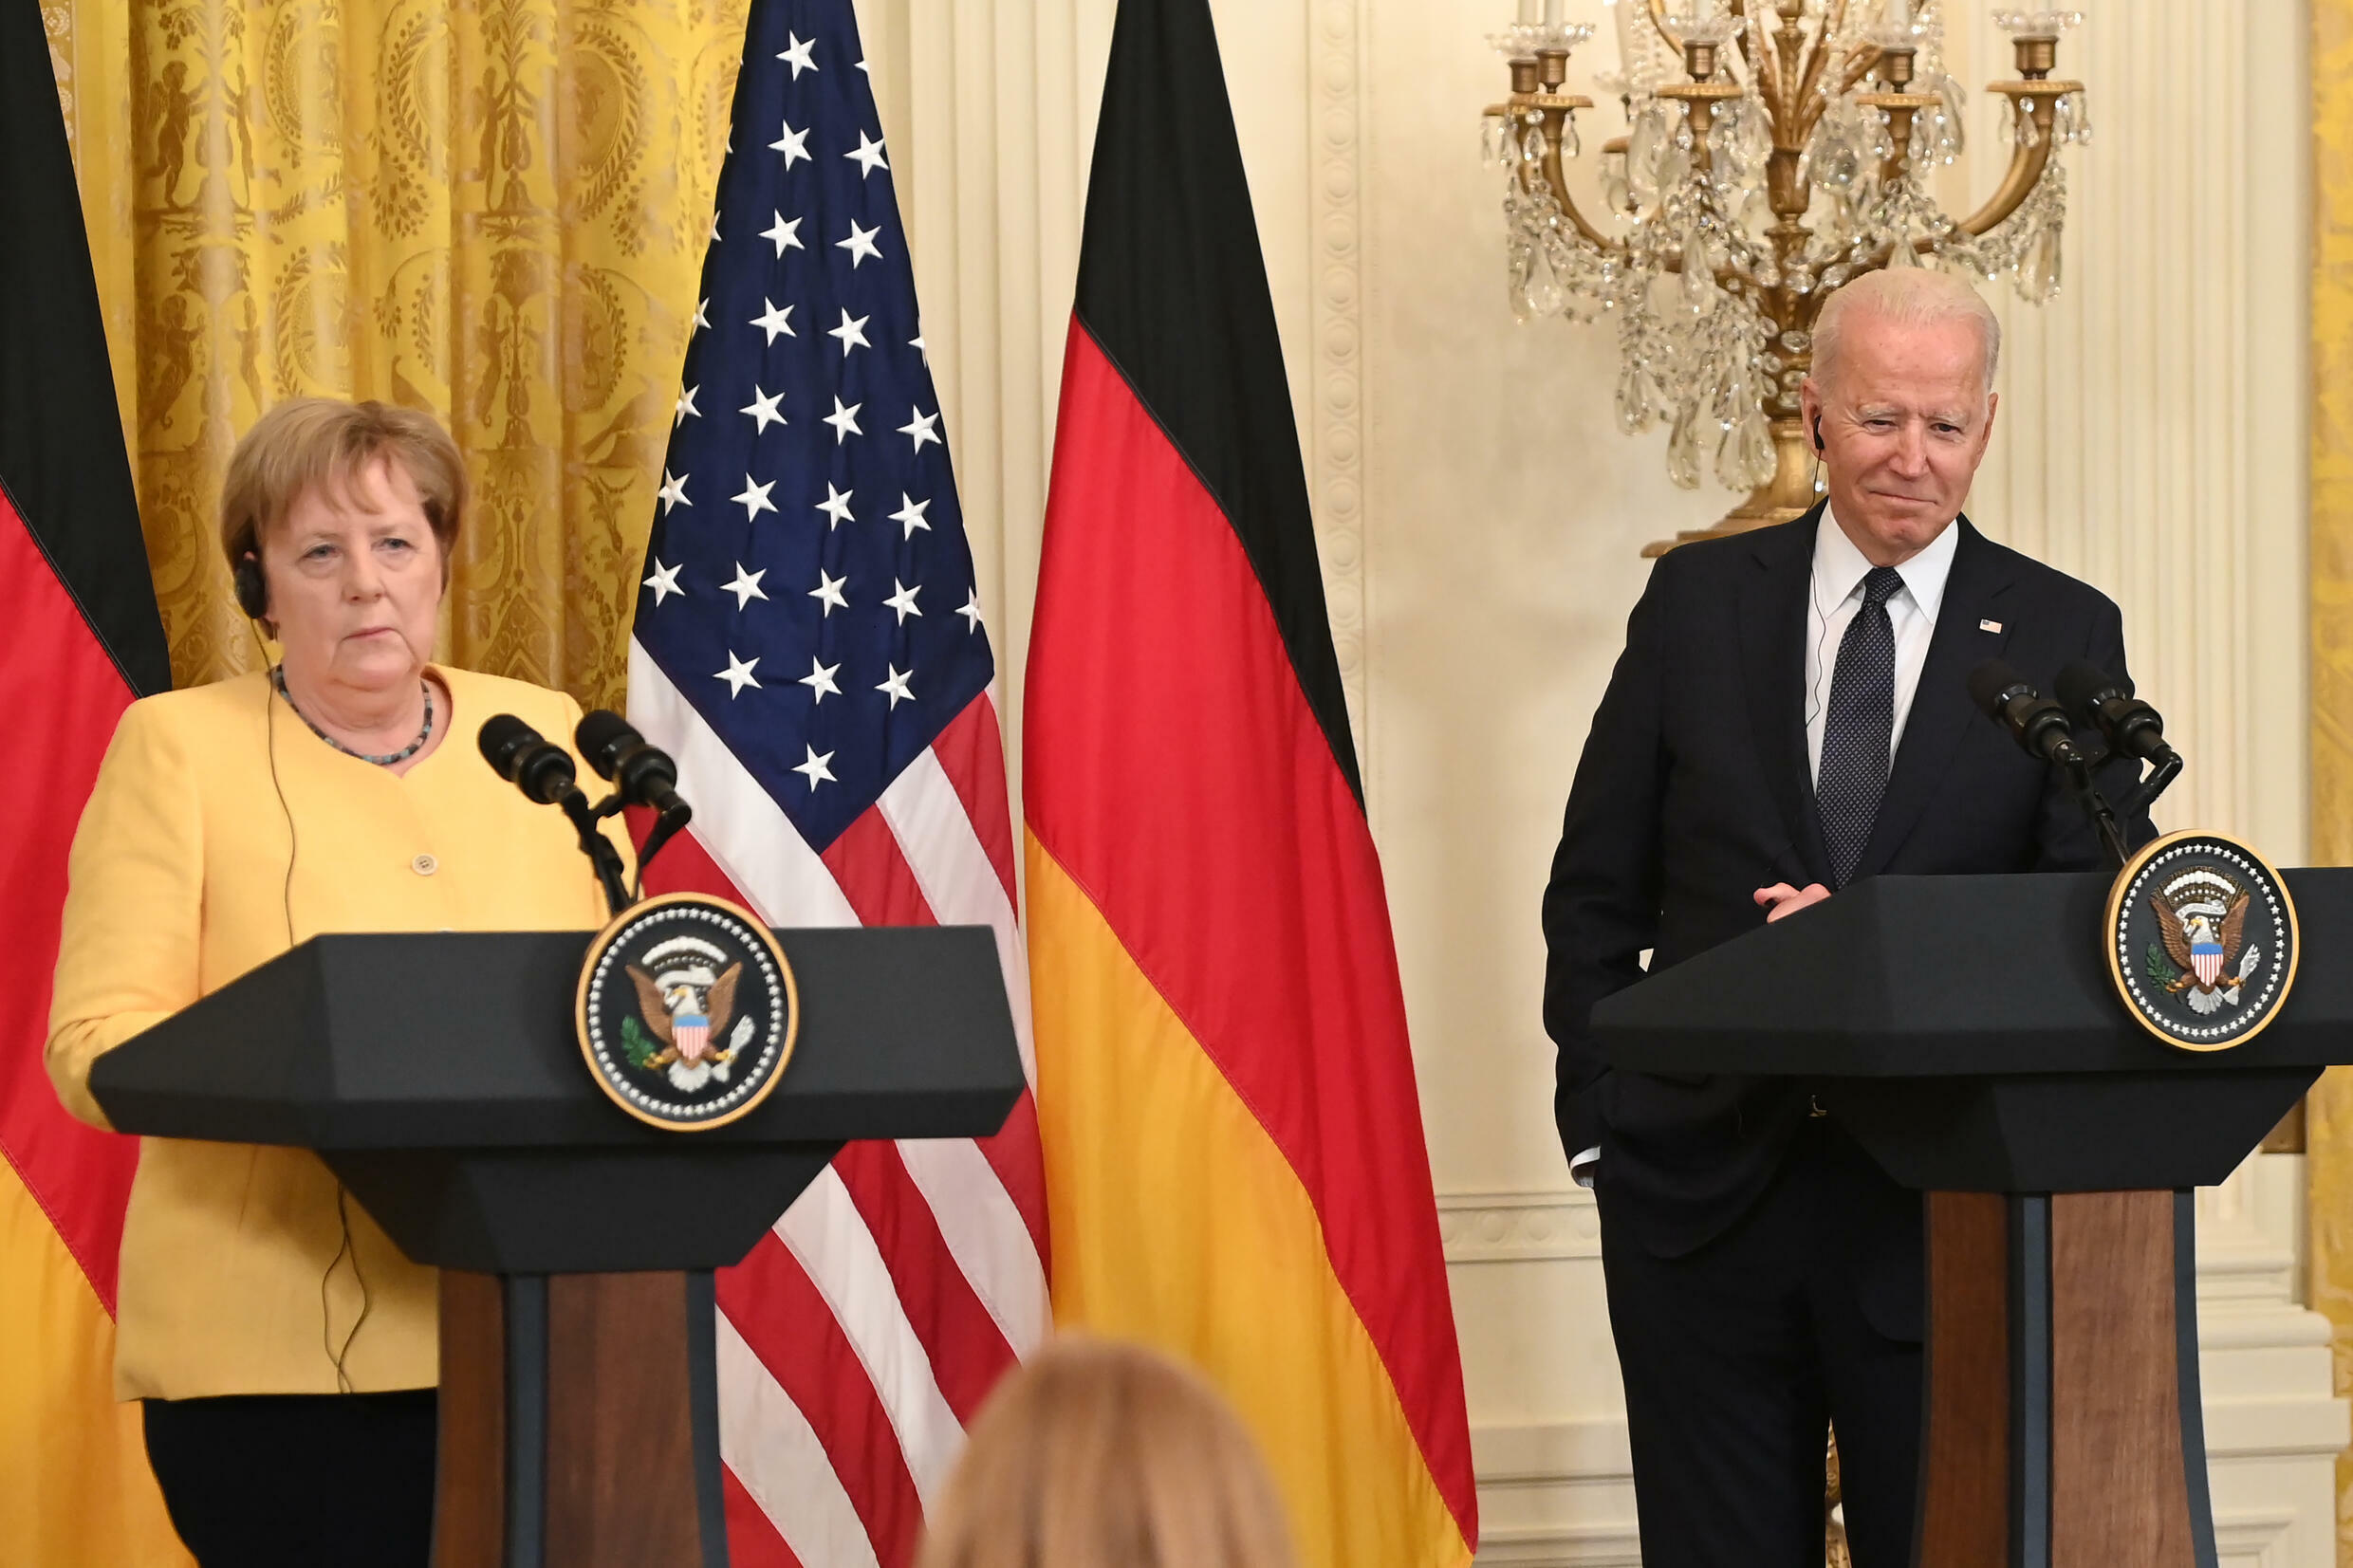 US President Joe Biden and German Chancellor Angela Merkel hold a joint press conference on July 15, 2021 in which they discuss Nord Stream 2